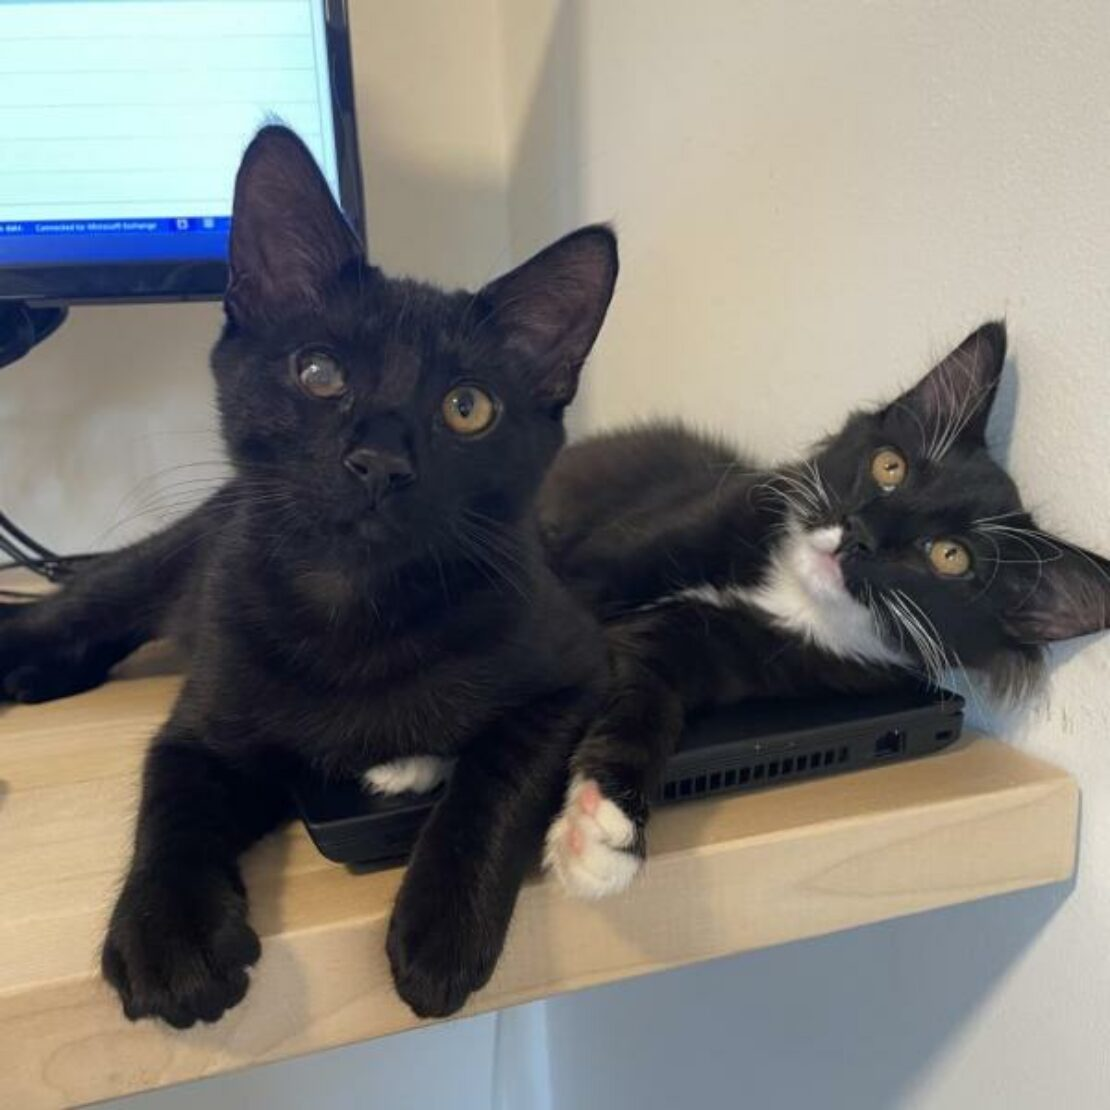 Black cat with cloudy left eye lounges on a tan board next to a mediumhair black cat with white paws, chin and chest.